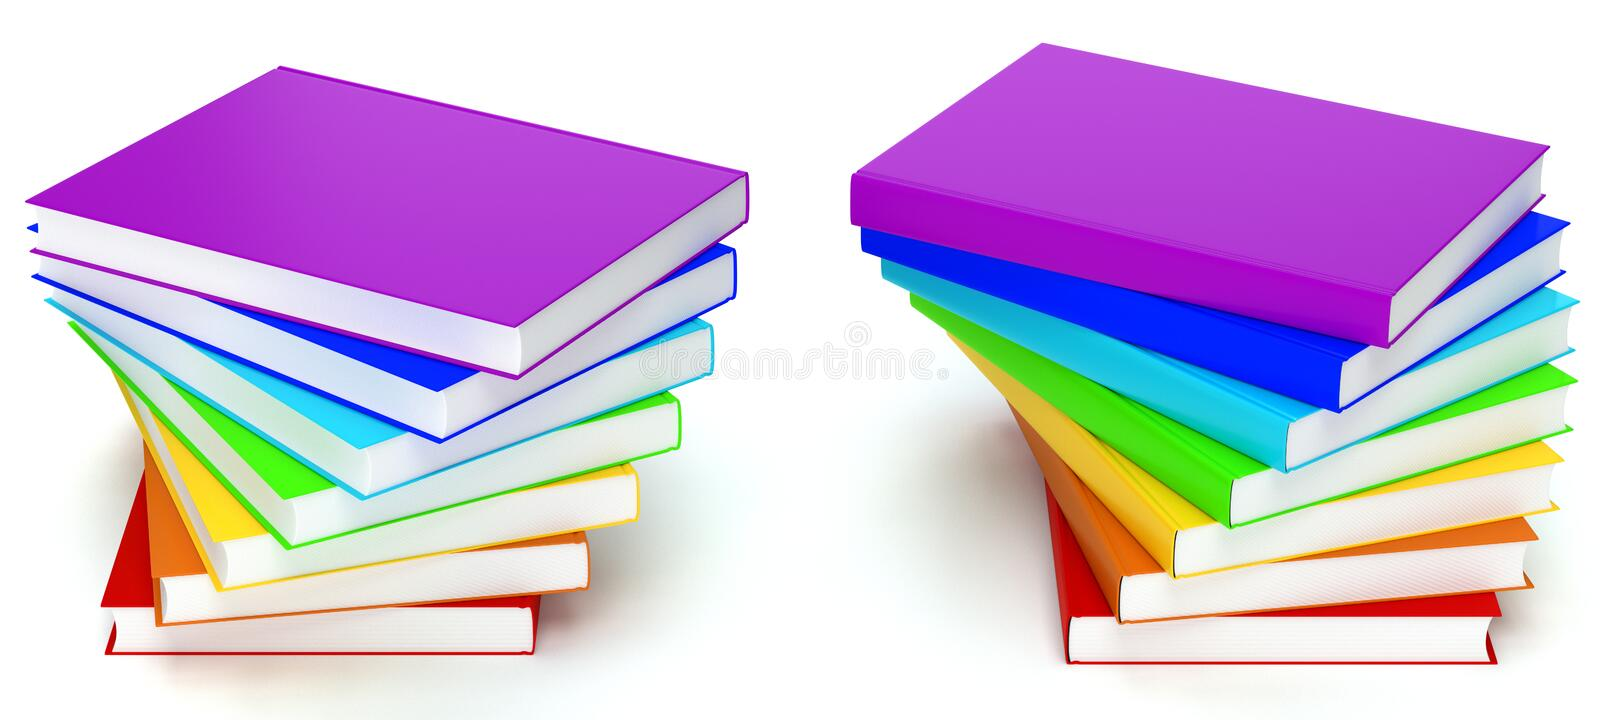 Stack Of Books In Colors Of Rainbow On White Background Stock ...